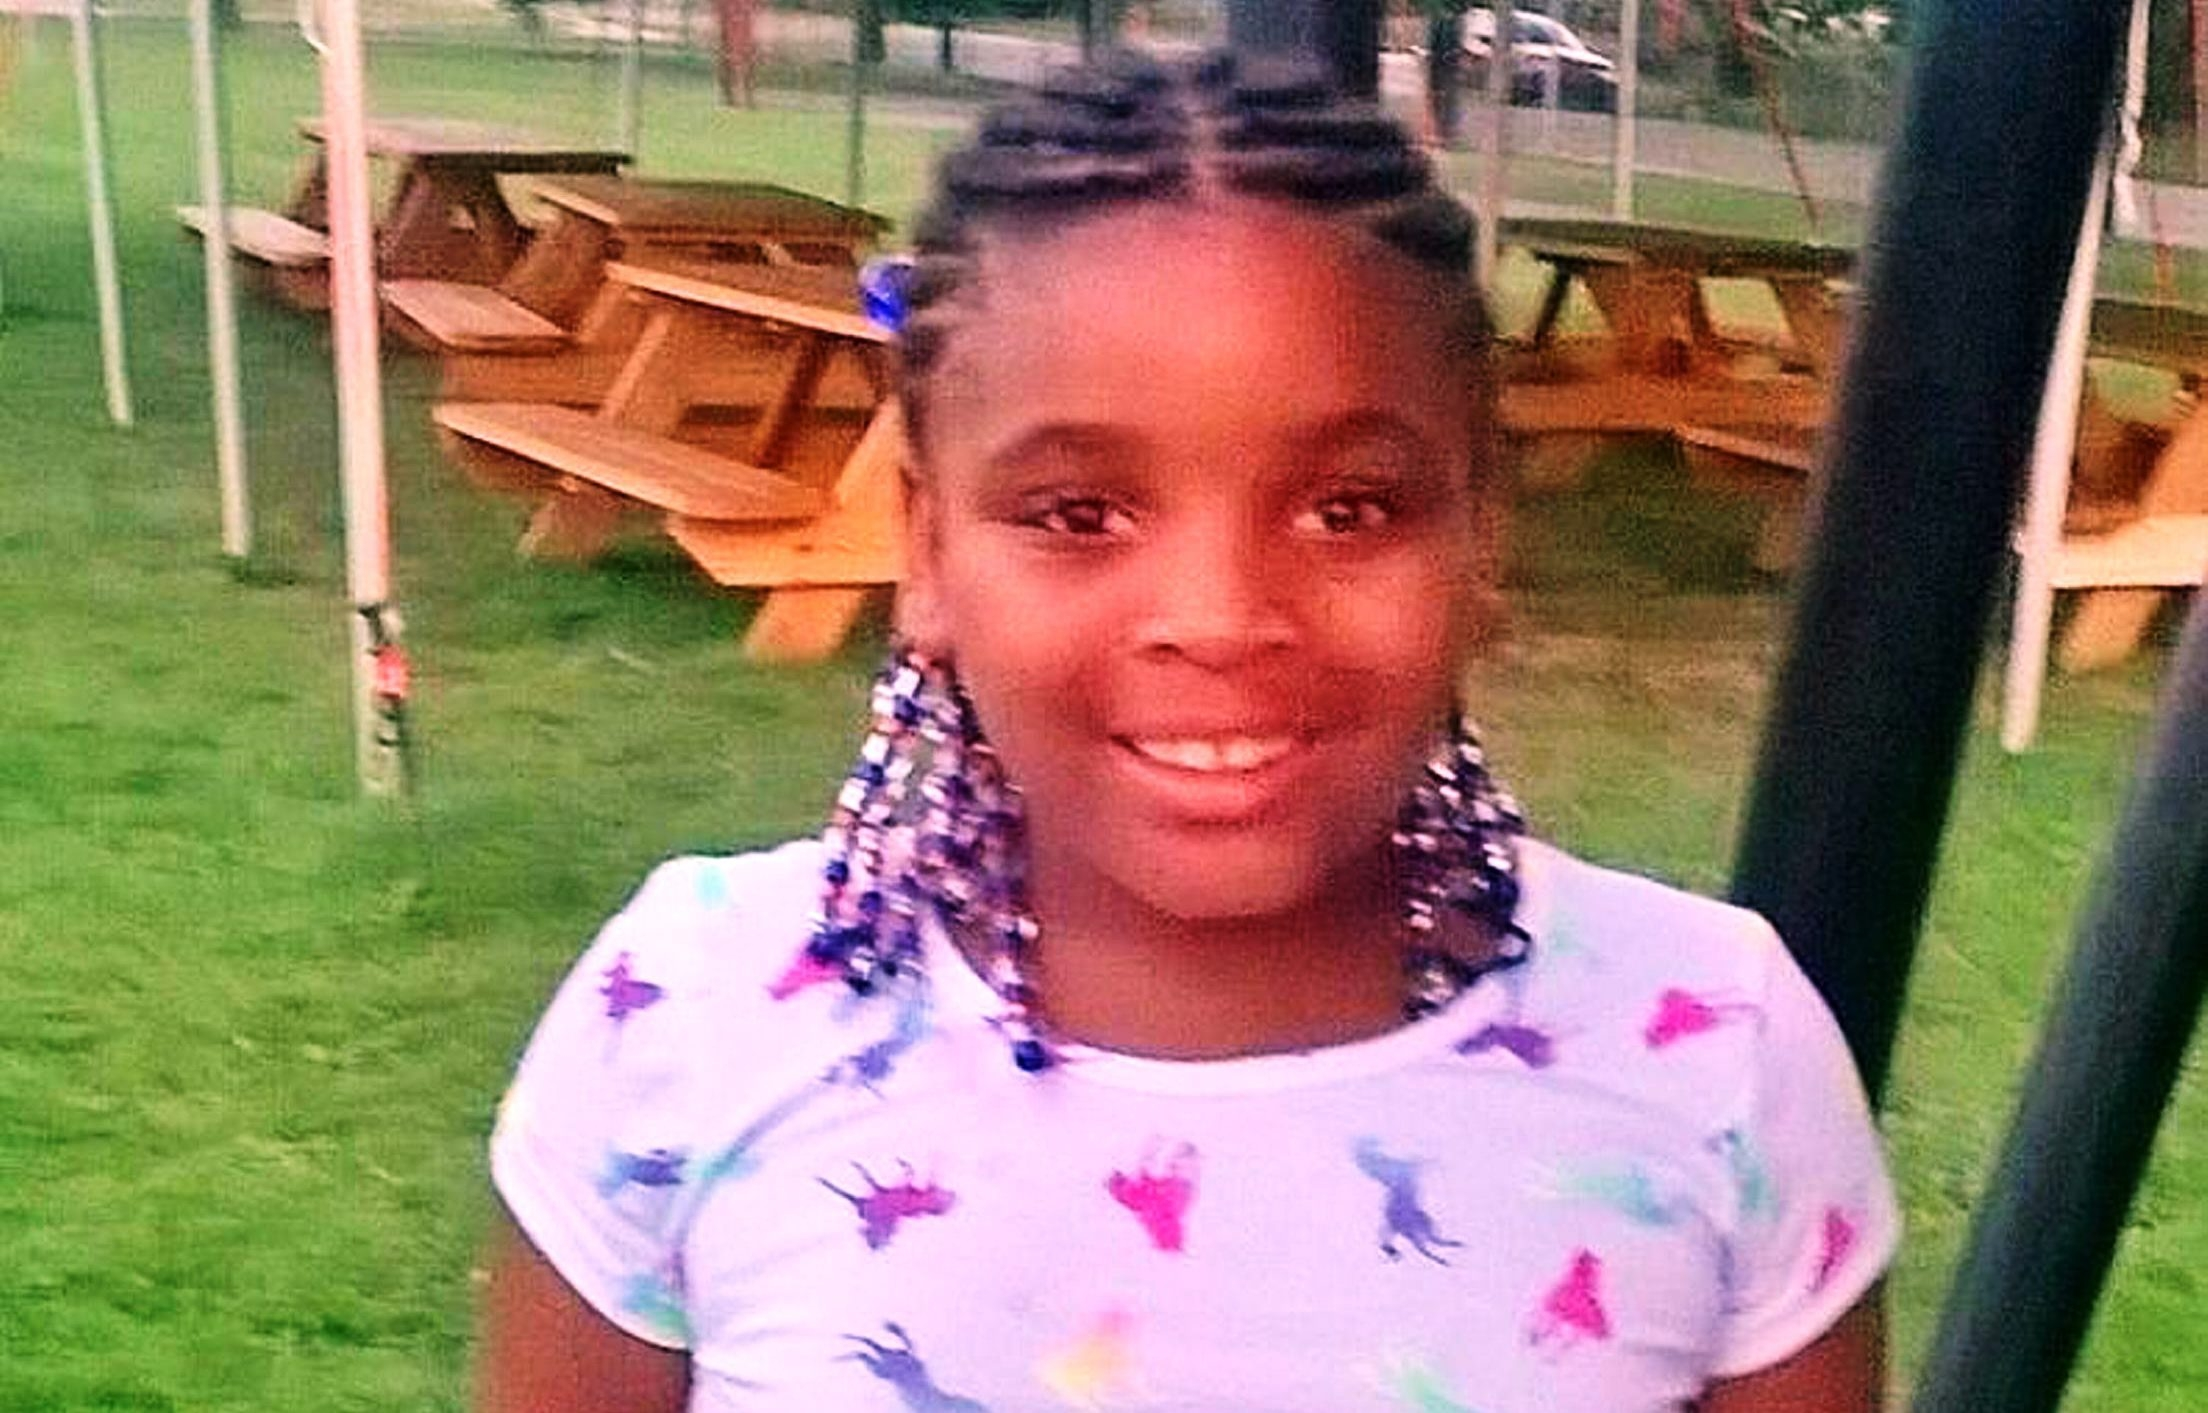 Treasure Brighon, 8, died Sunday from burns suffered in a Feb. 19 house fire deemed accidental.